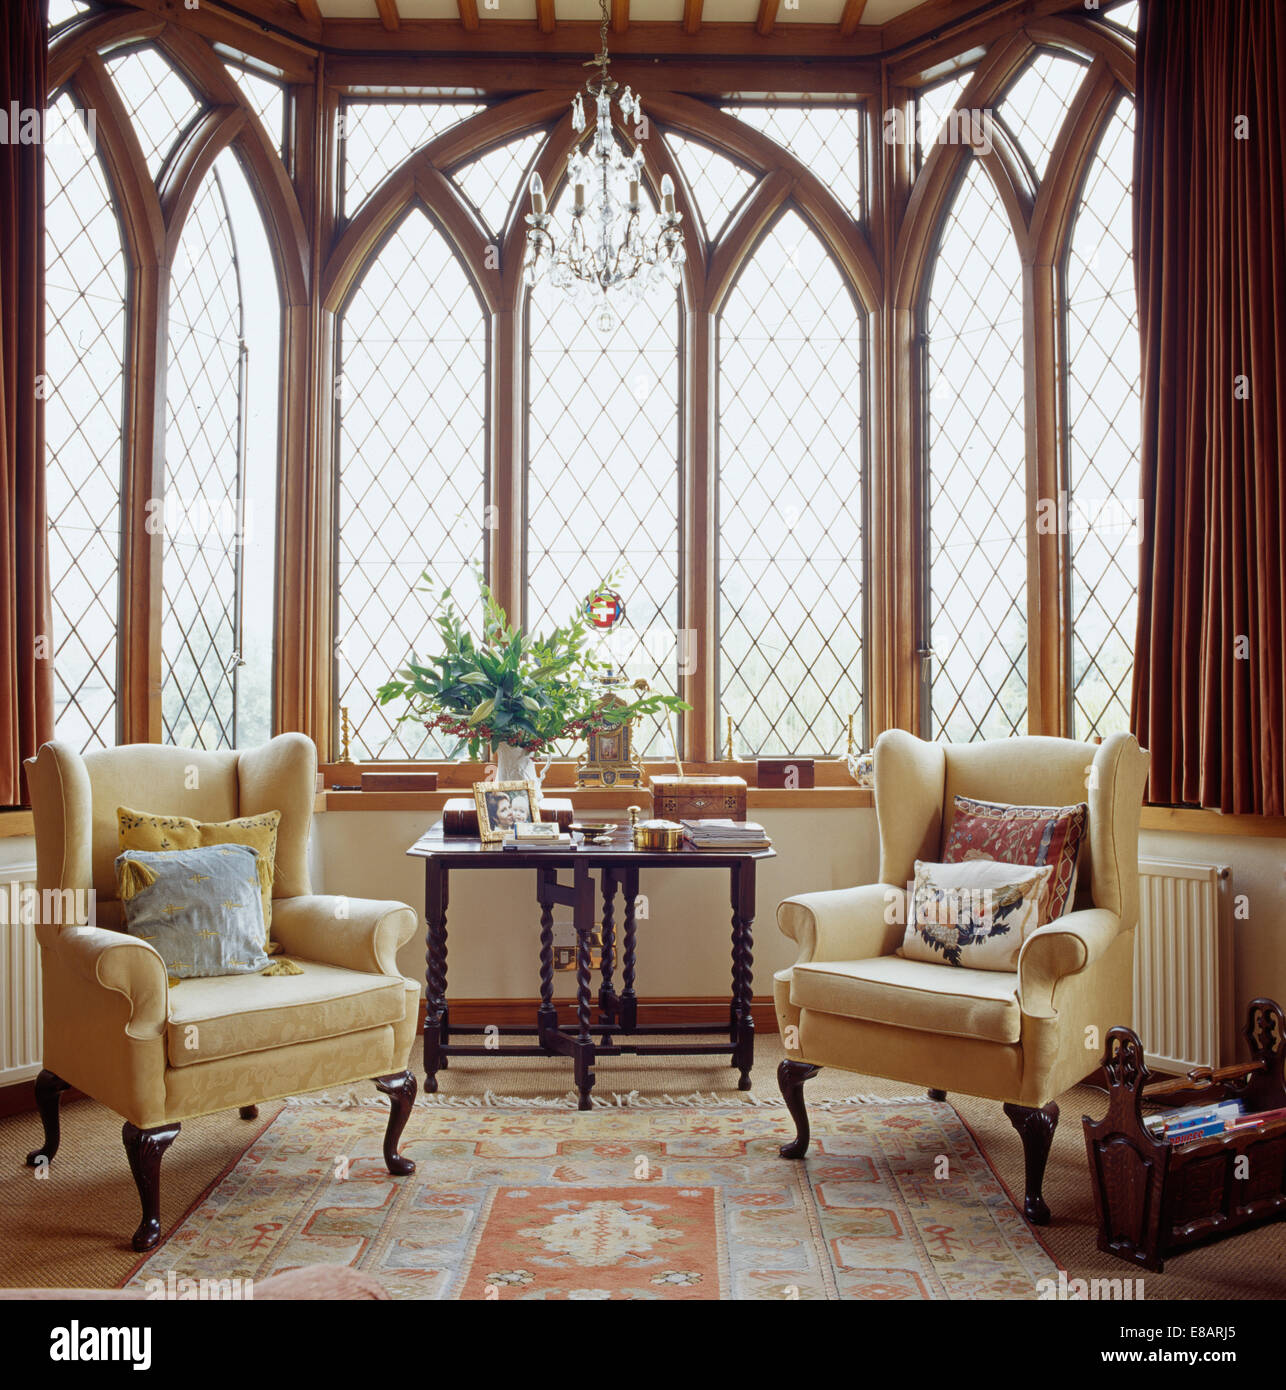 Cream Wing Back Chairs In Front Of Tall Gothic Style Windows In Country  Living Room With Antique Silk Carpet